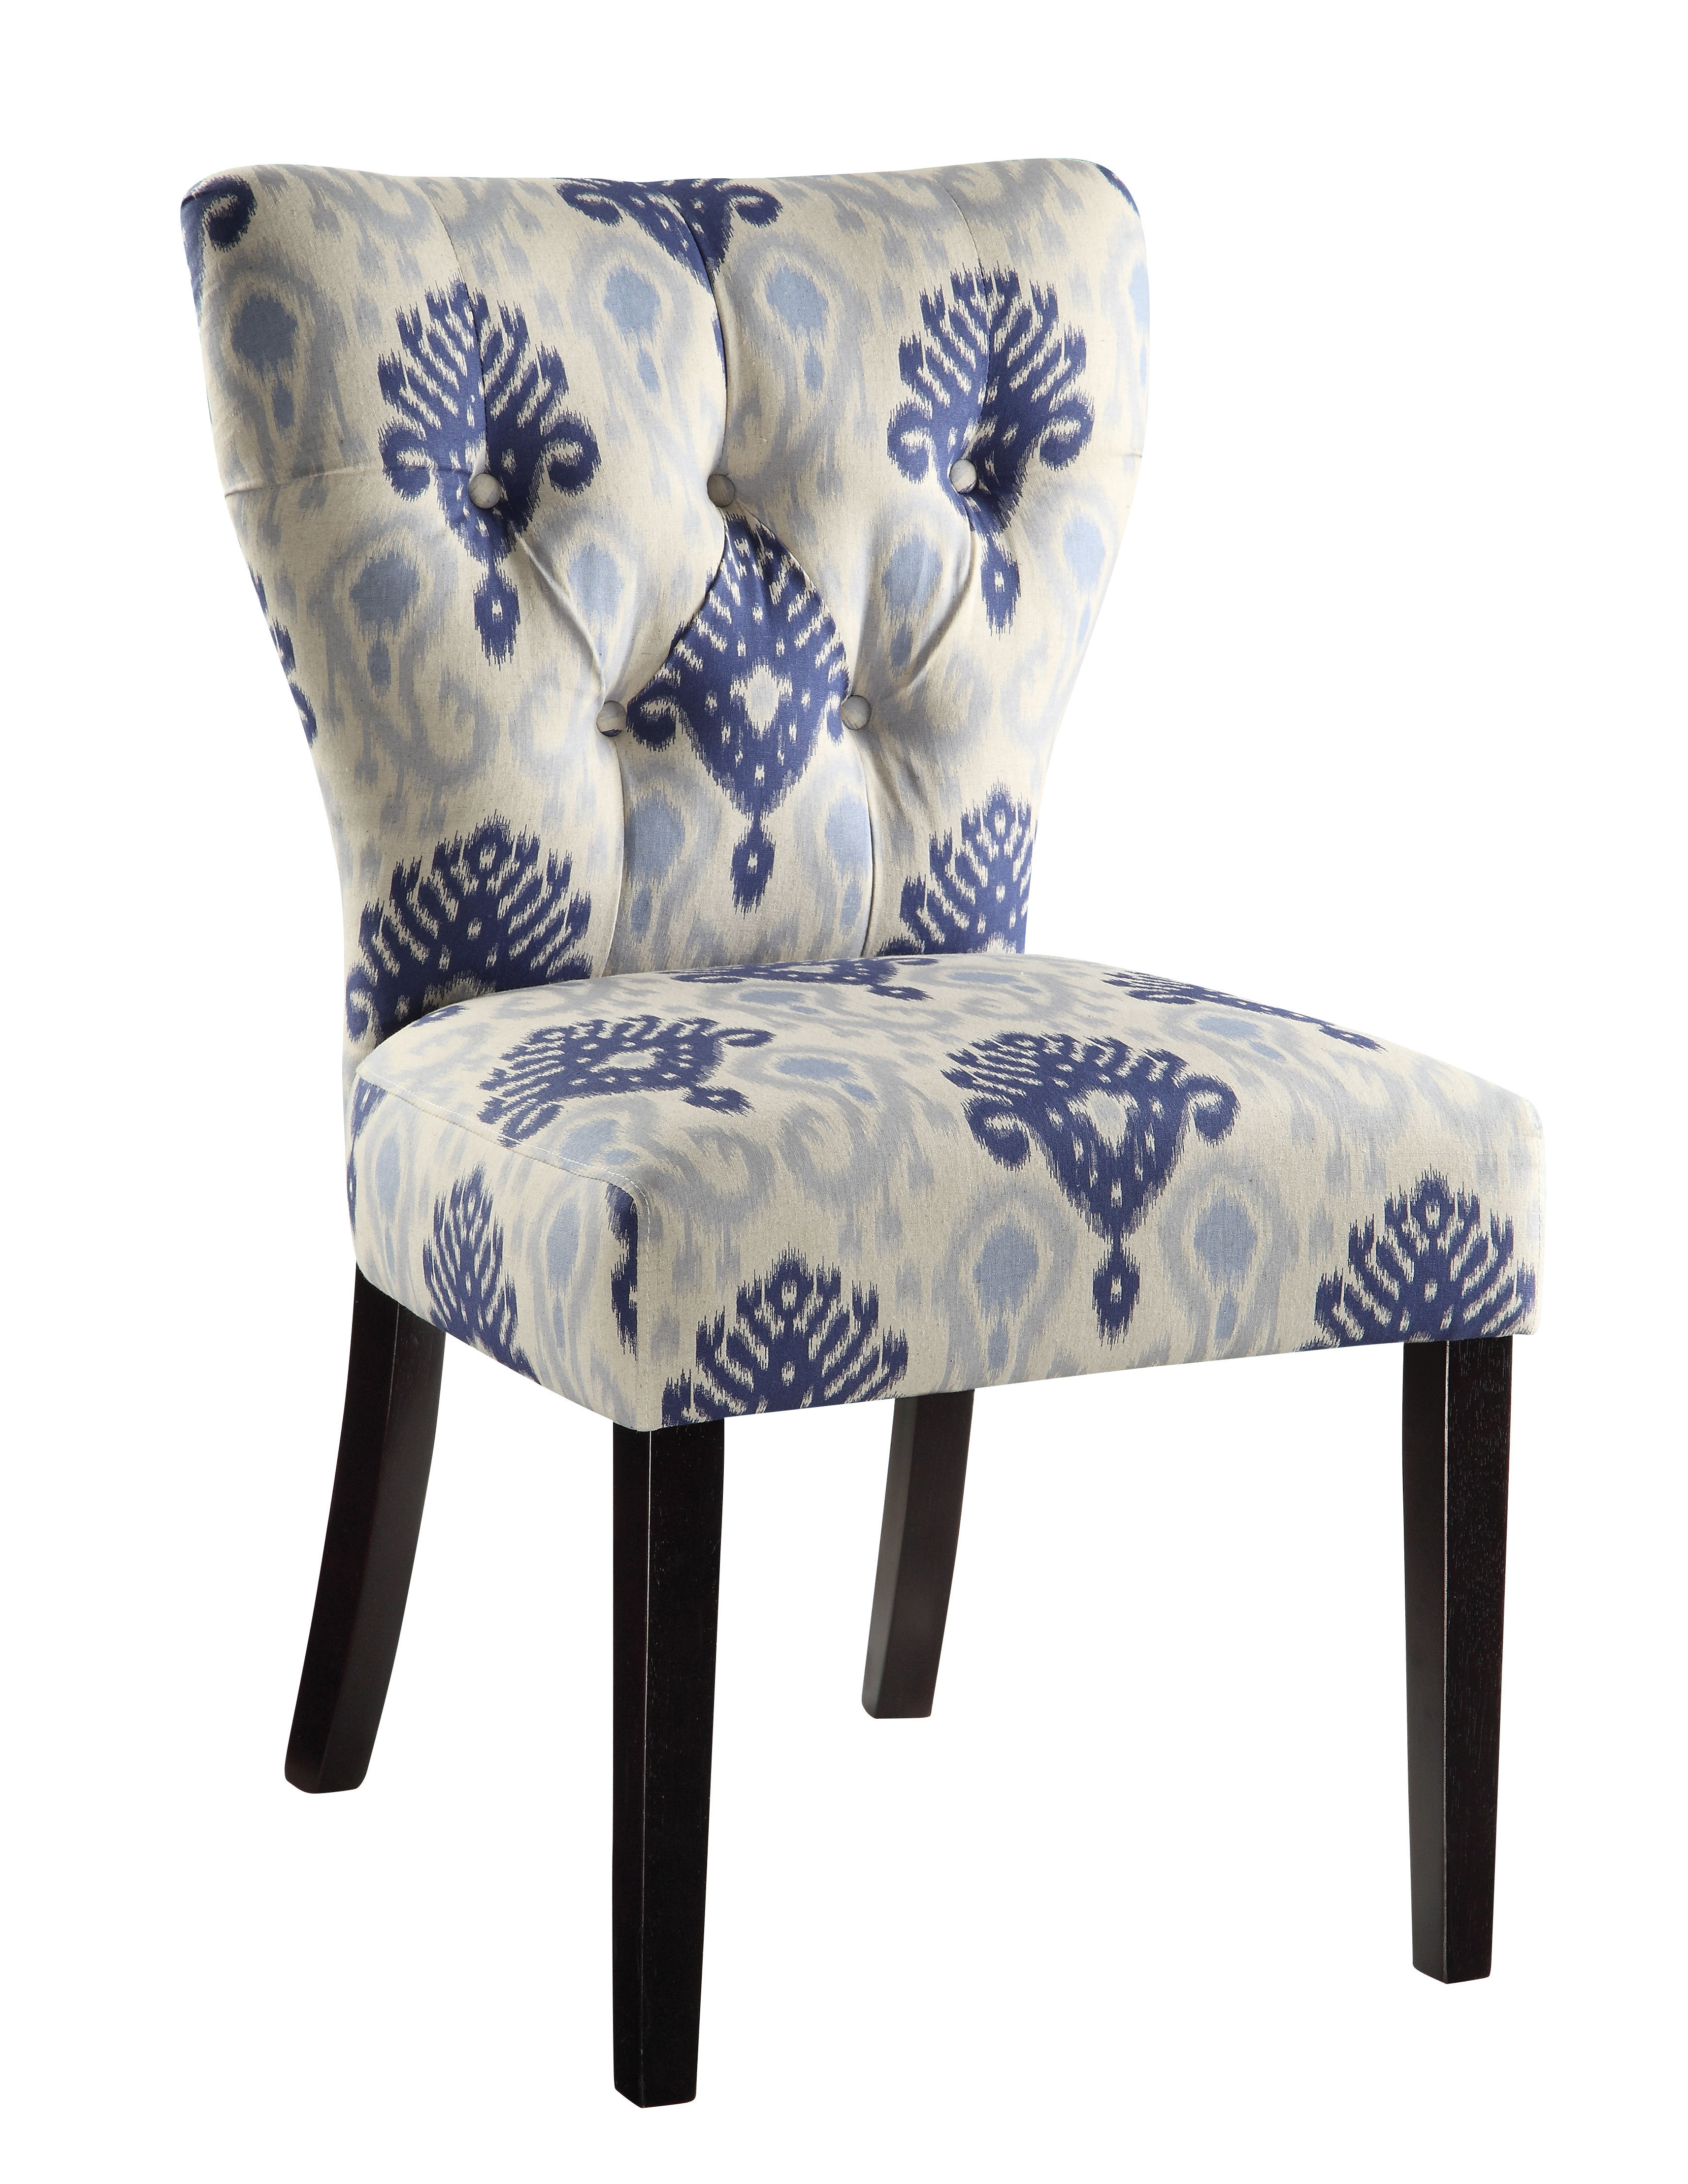 Andrew Blossom Blue Tufted Back Fabric Solid Wood Parson